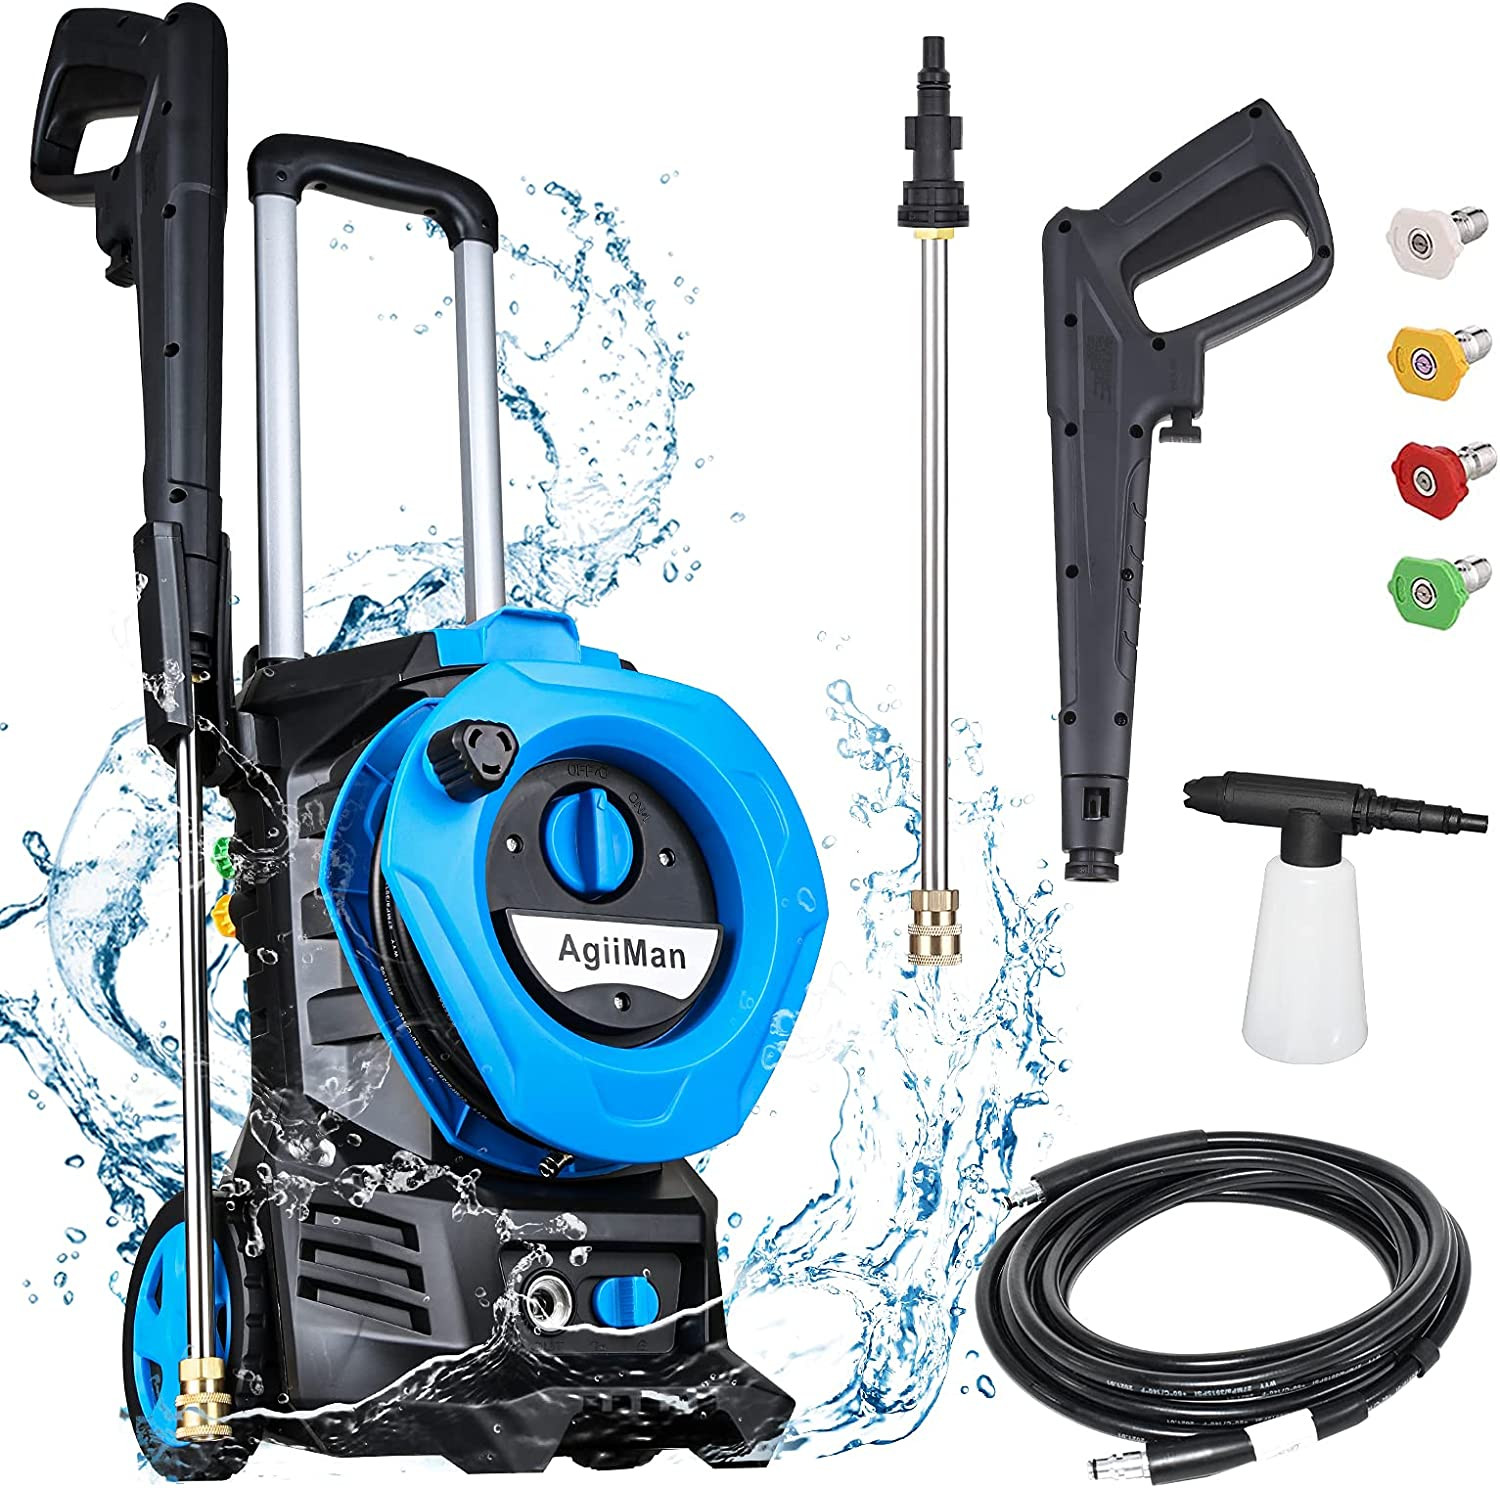 AgiiMan 3380PSI Electric Pressure Washer W High Very popular Power - Many popular brands